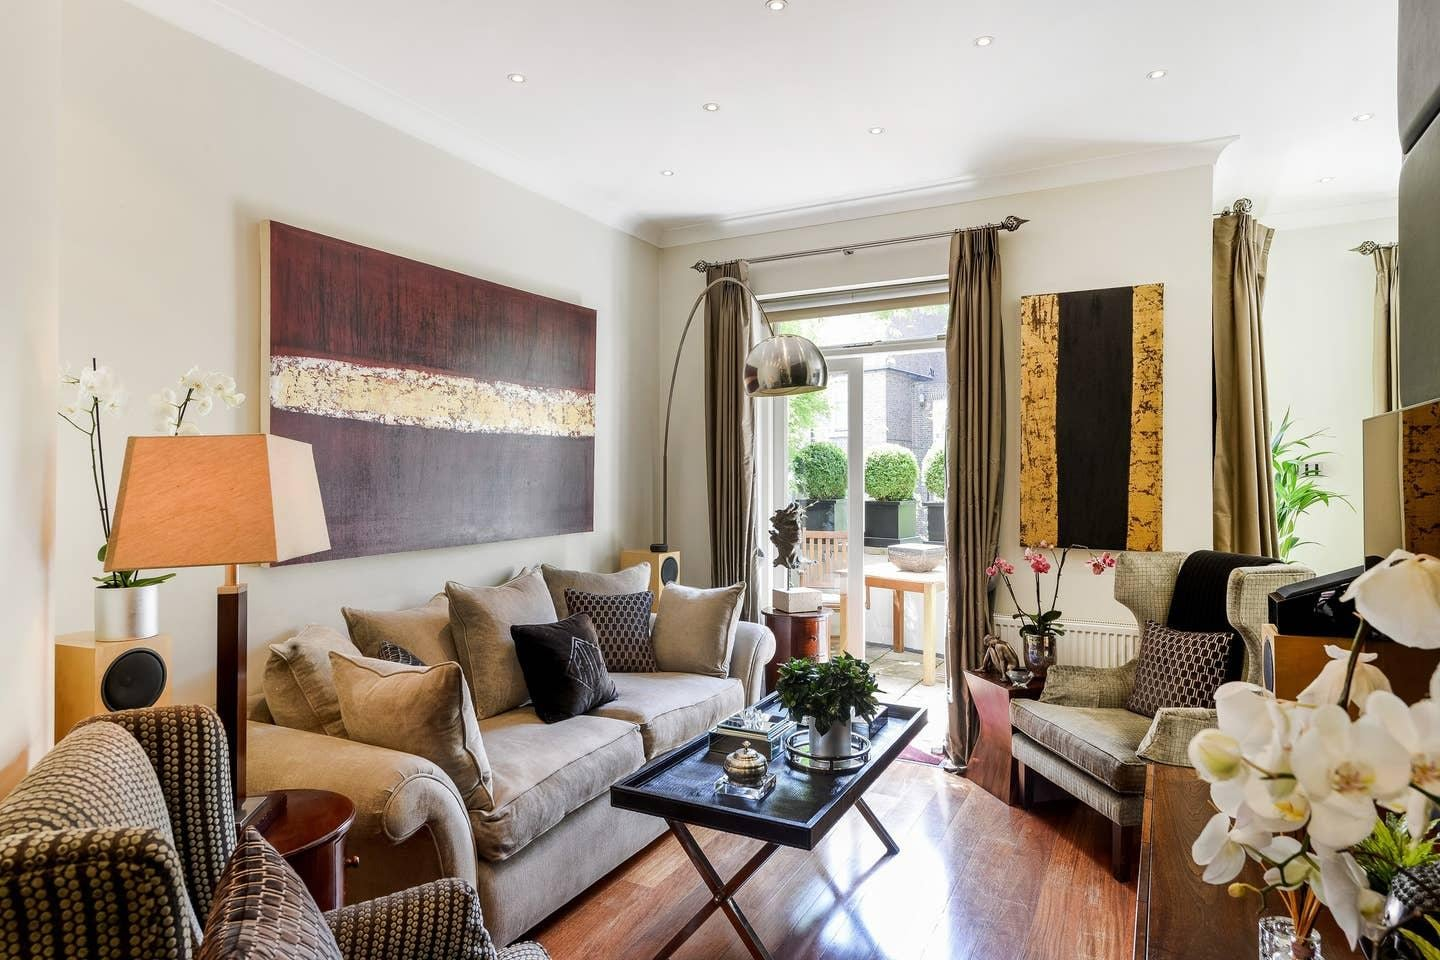 Property Image 1 - Luxurious Apartment with Beautiful Garden